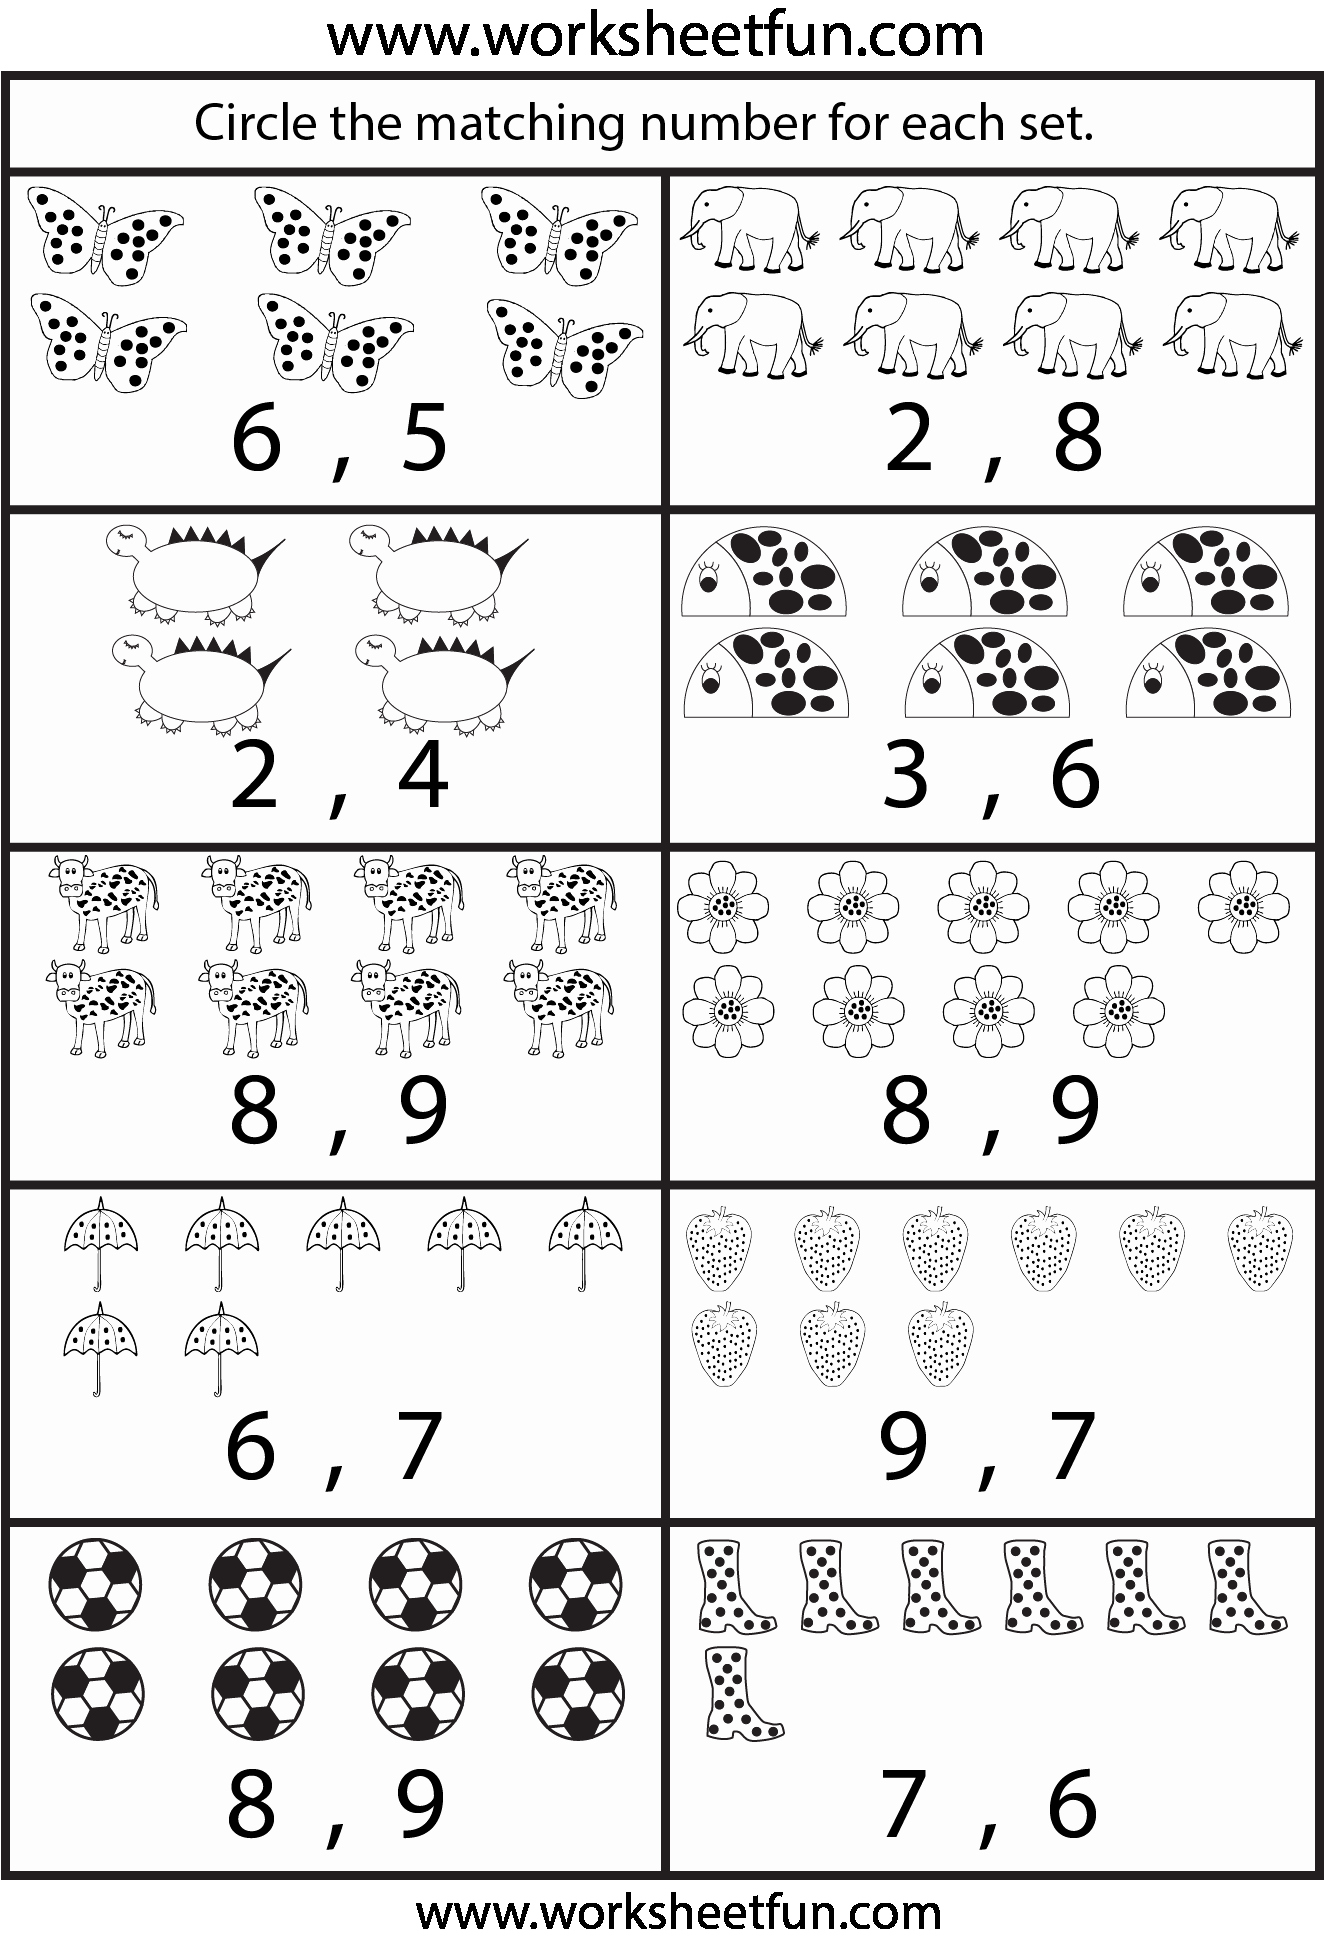 Counting to 20 Worksheet Beautiful Counting to 20 Worksheets Pdf Nepalfiles